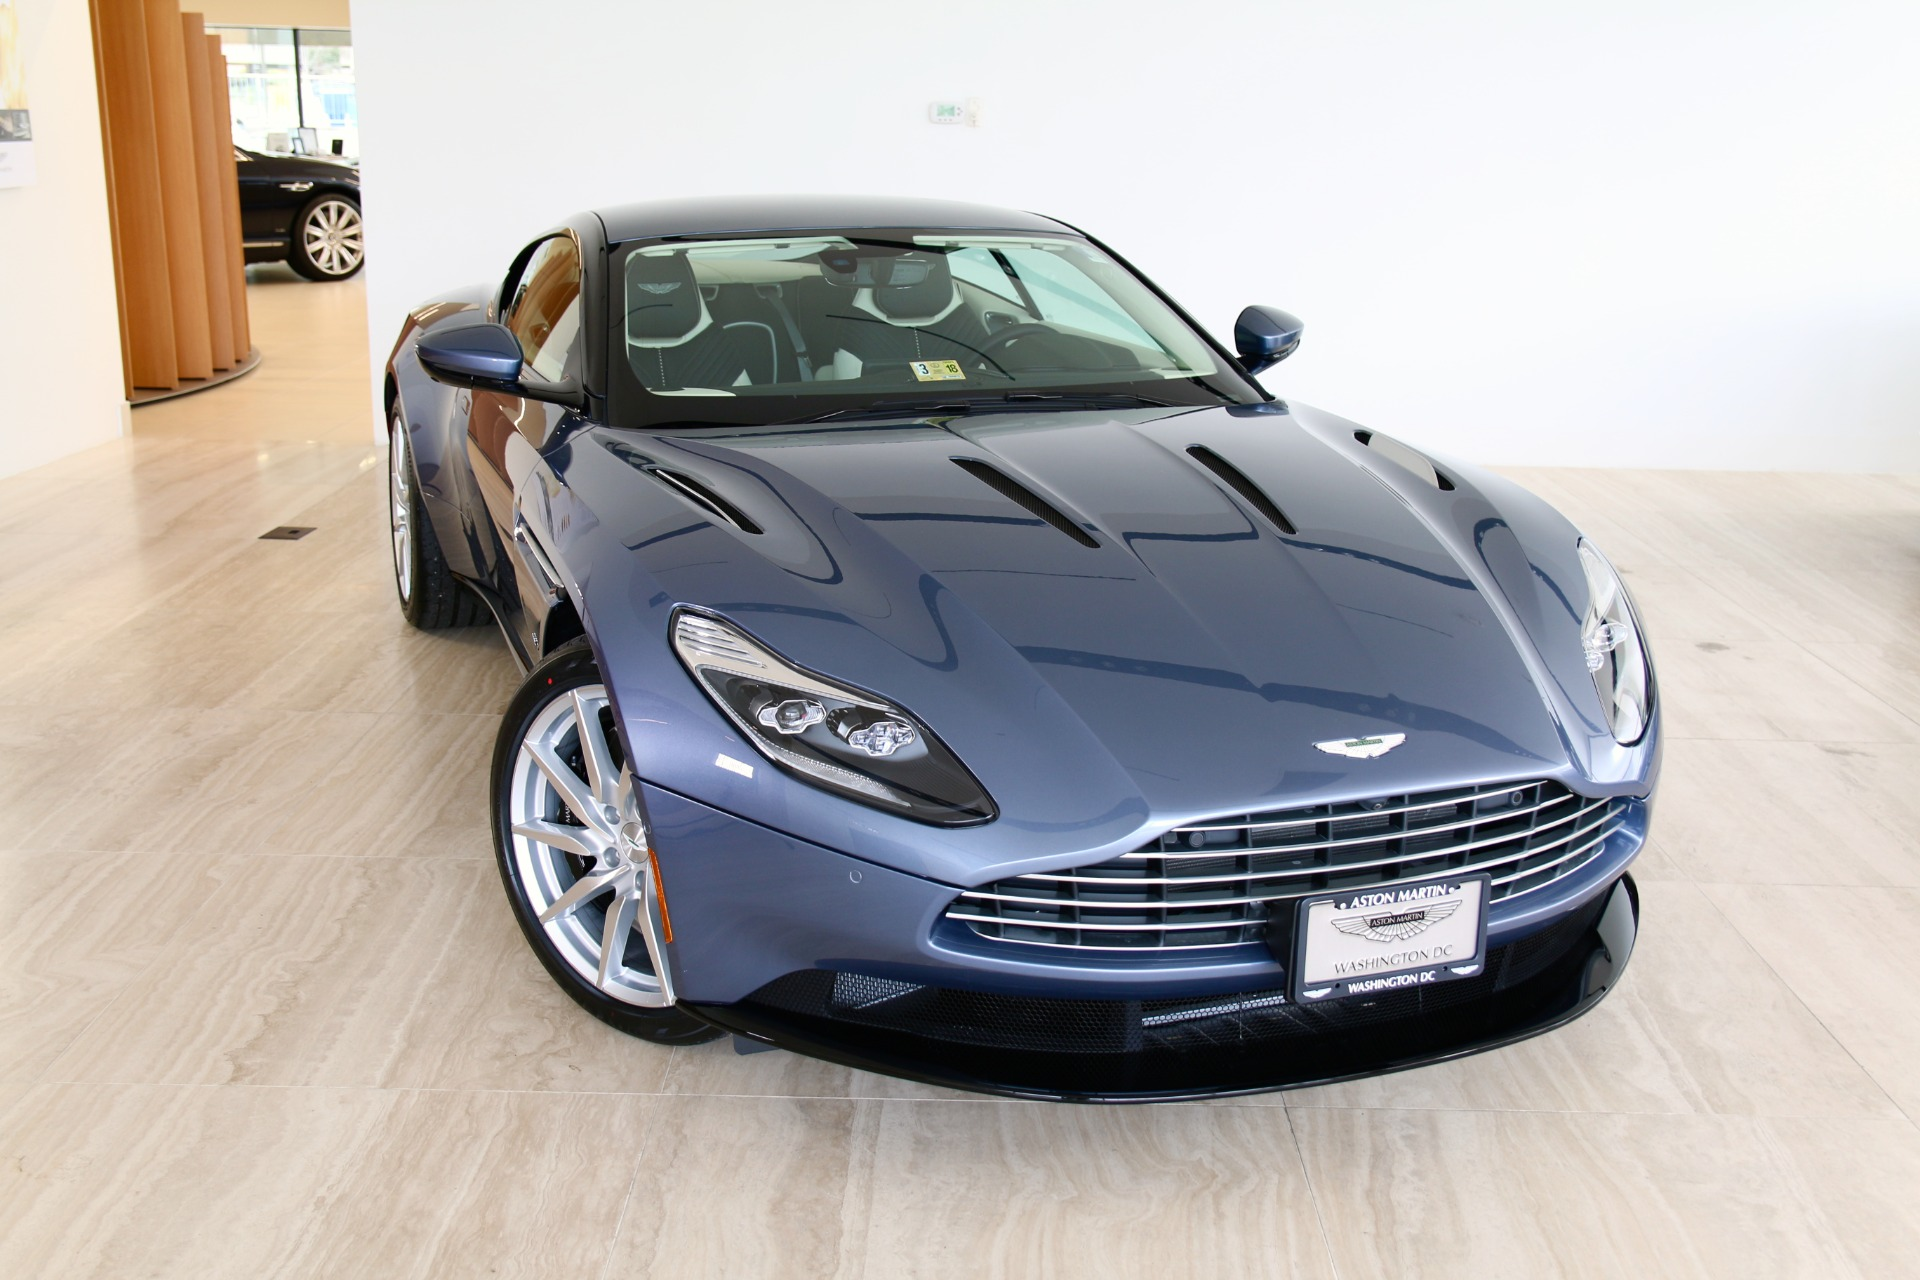 Aston Martin DB Stock N For Sale Near Vienna VA VA - Aston martin washington dc